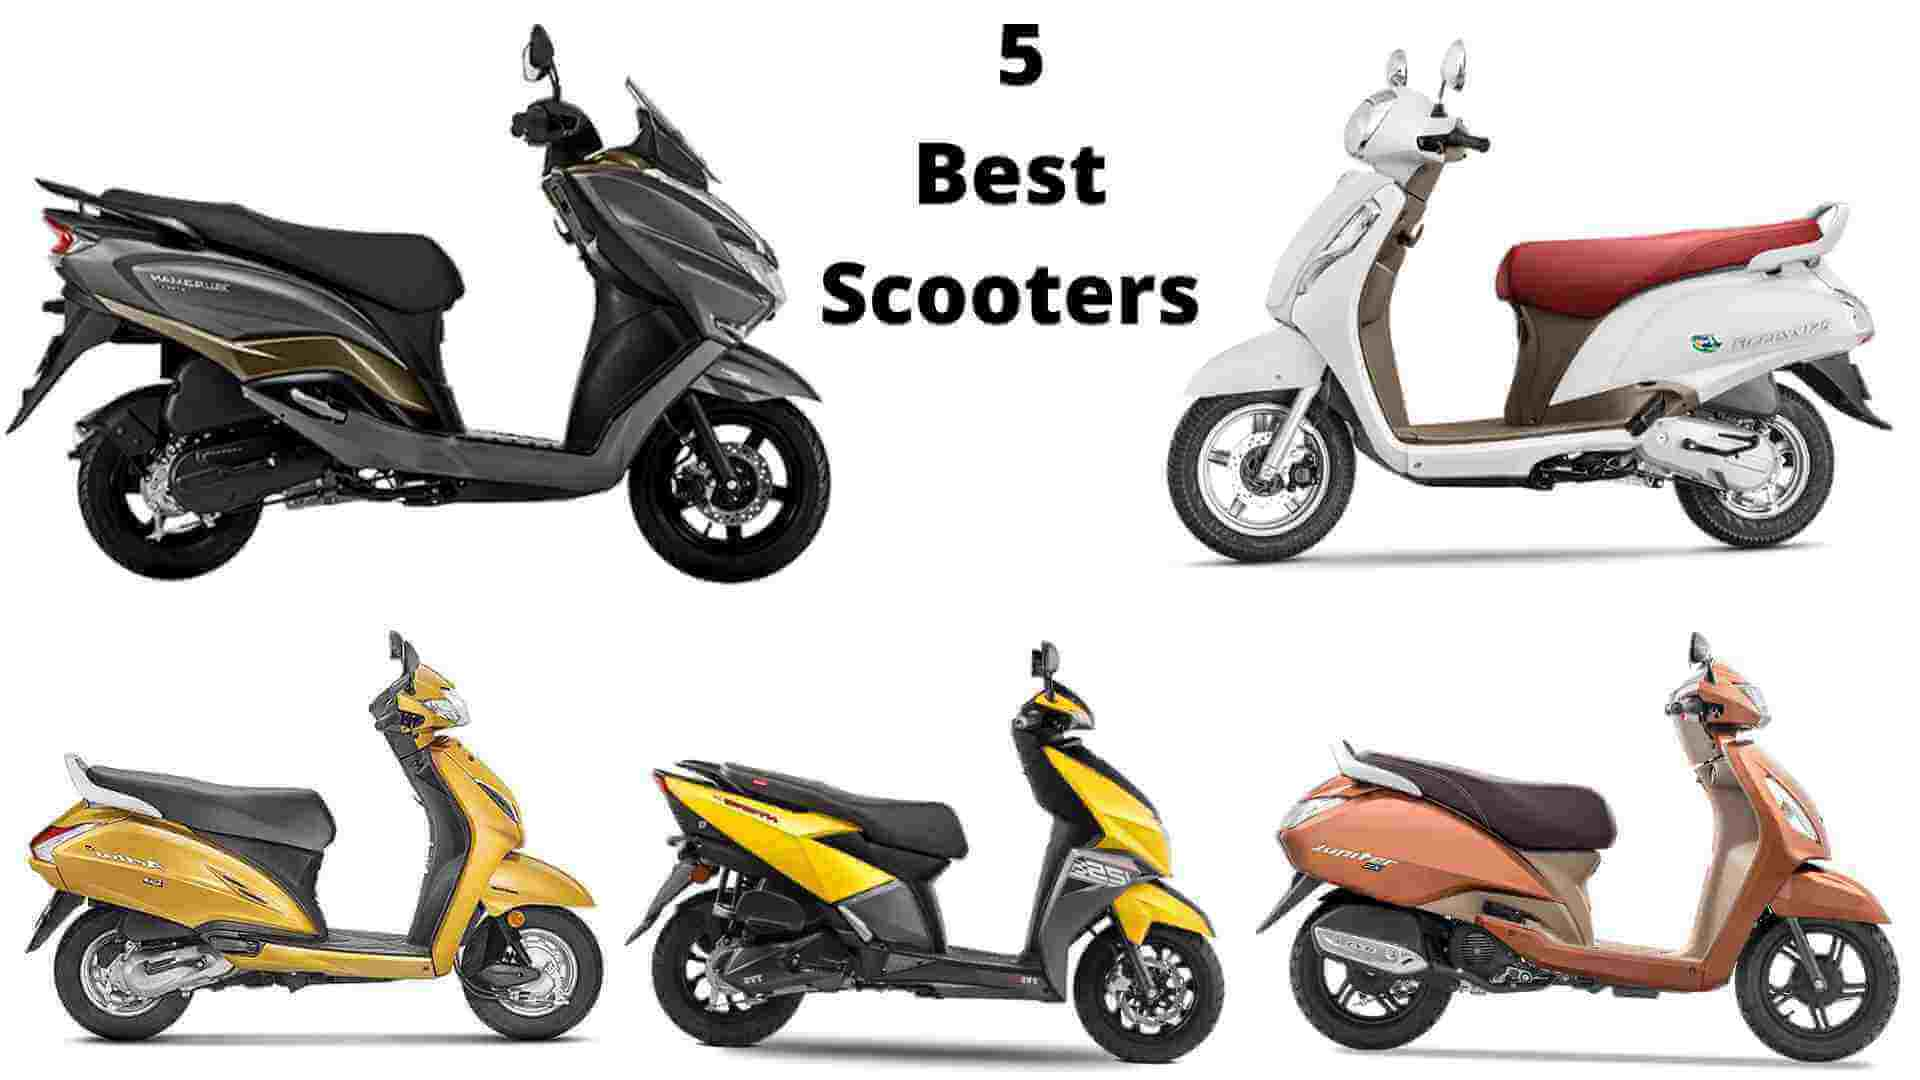 Top 5 best scooters to use in the motorcycle market